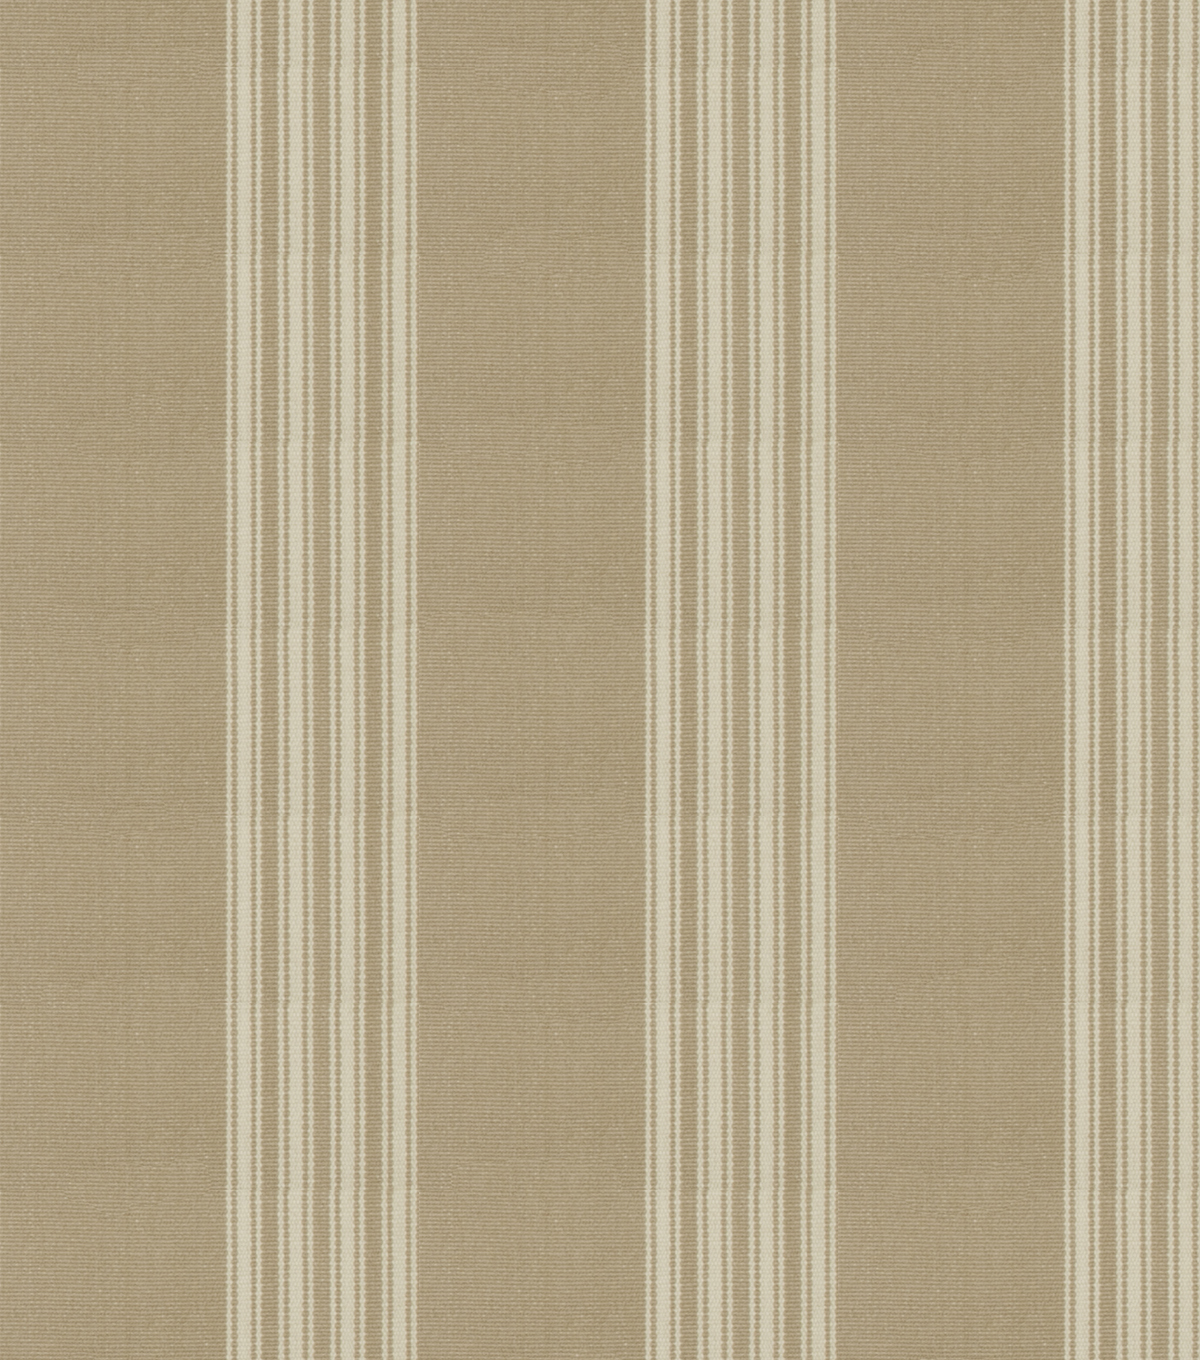 Home Decor 8x8 Fabric Swatch-Eaton Square Wagner Linen